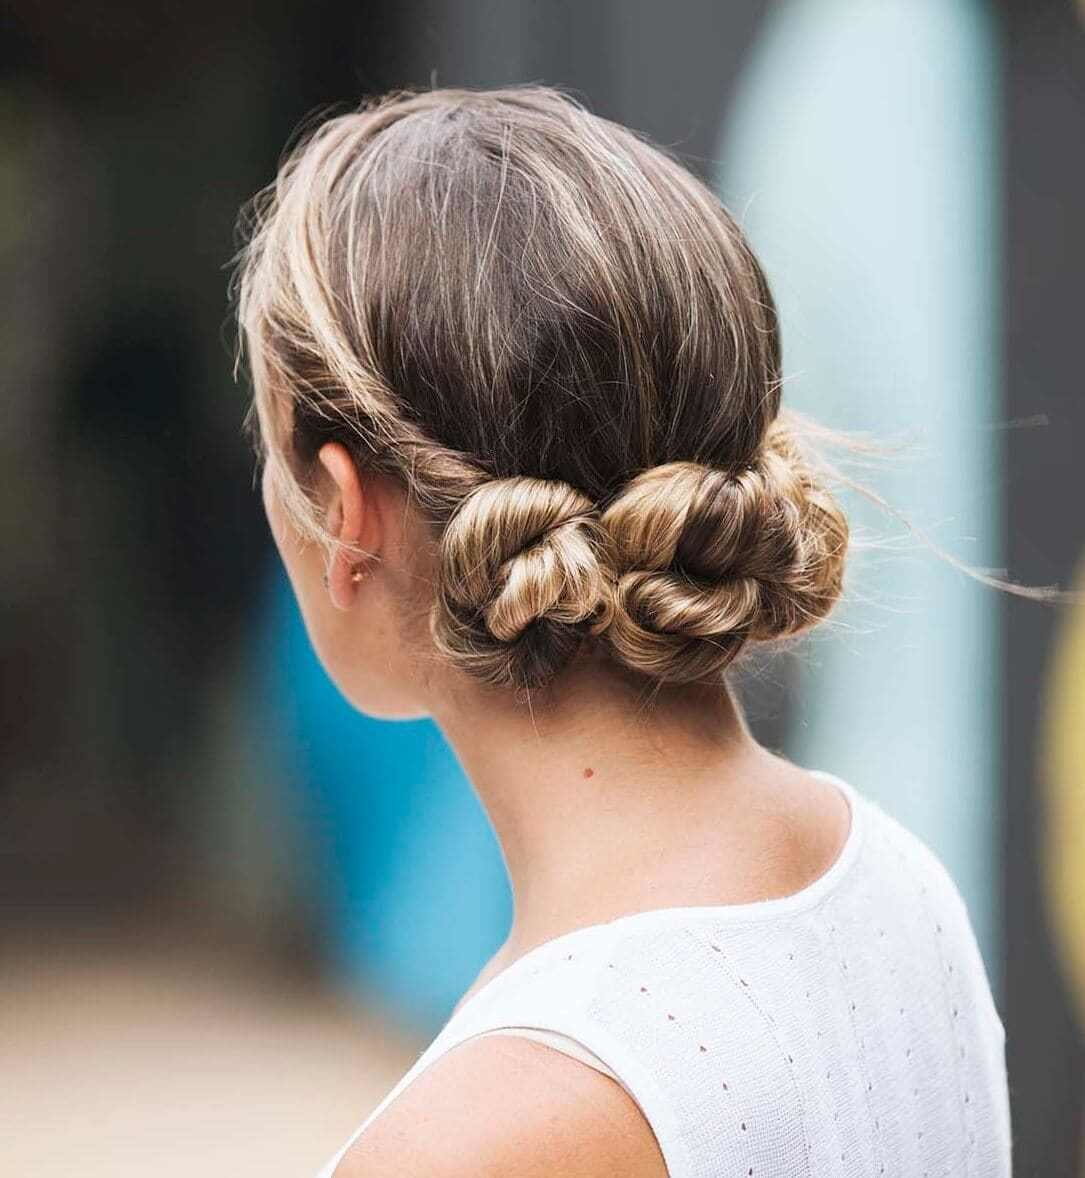 The Best 8 Uber Chic Chignon Hairstyles For Your Wedding Day Pictures